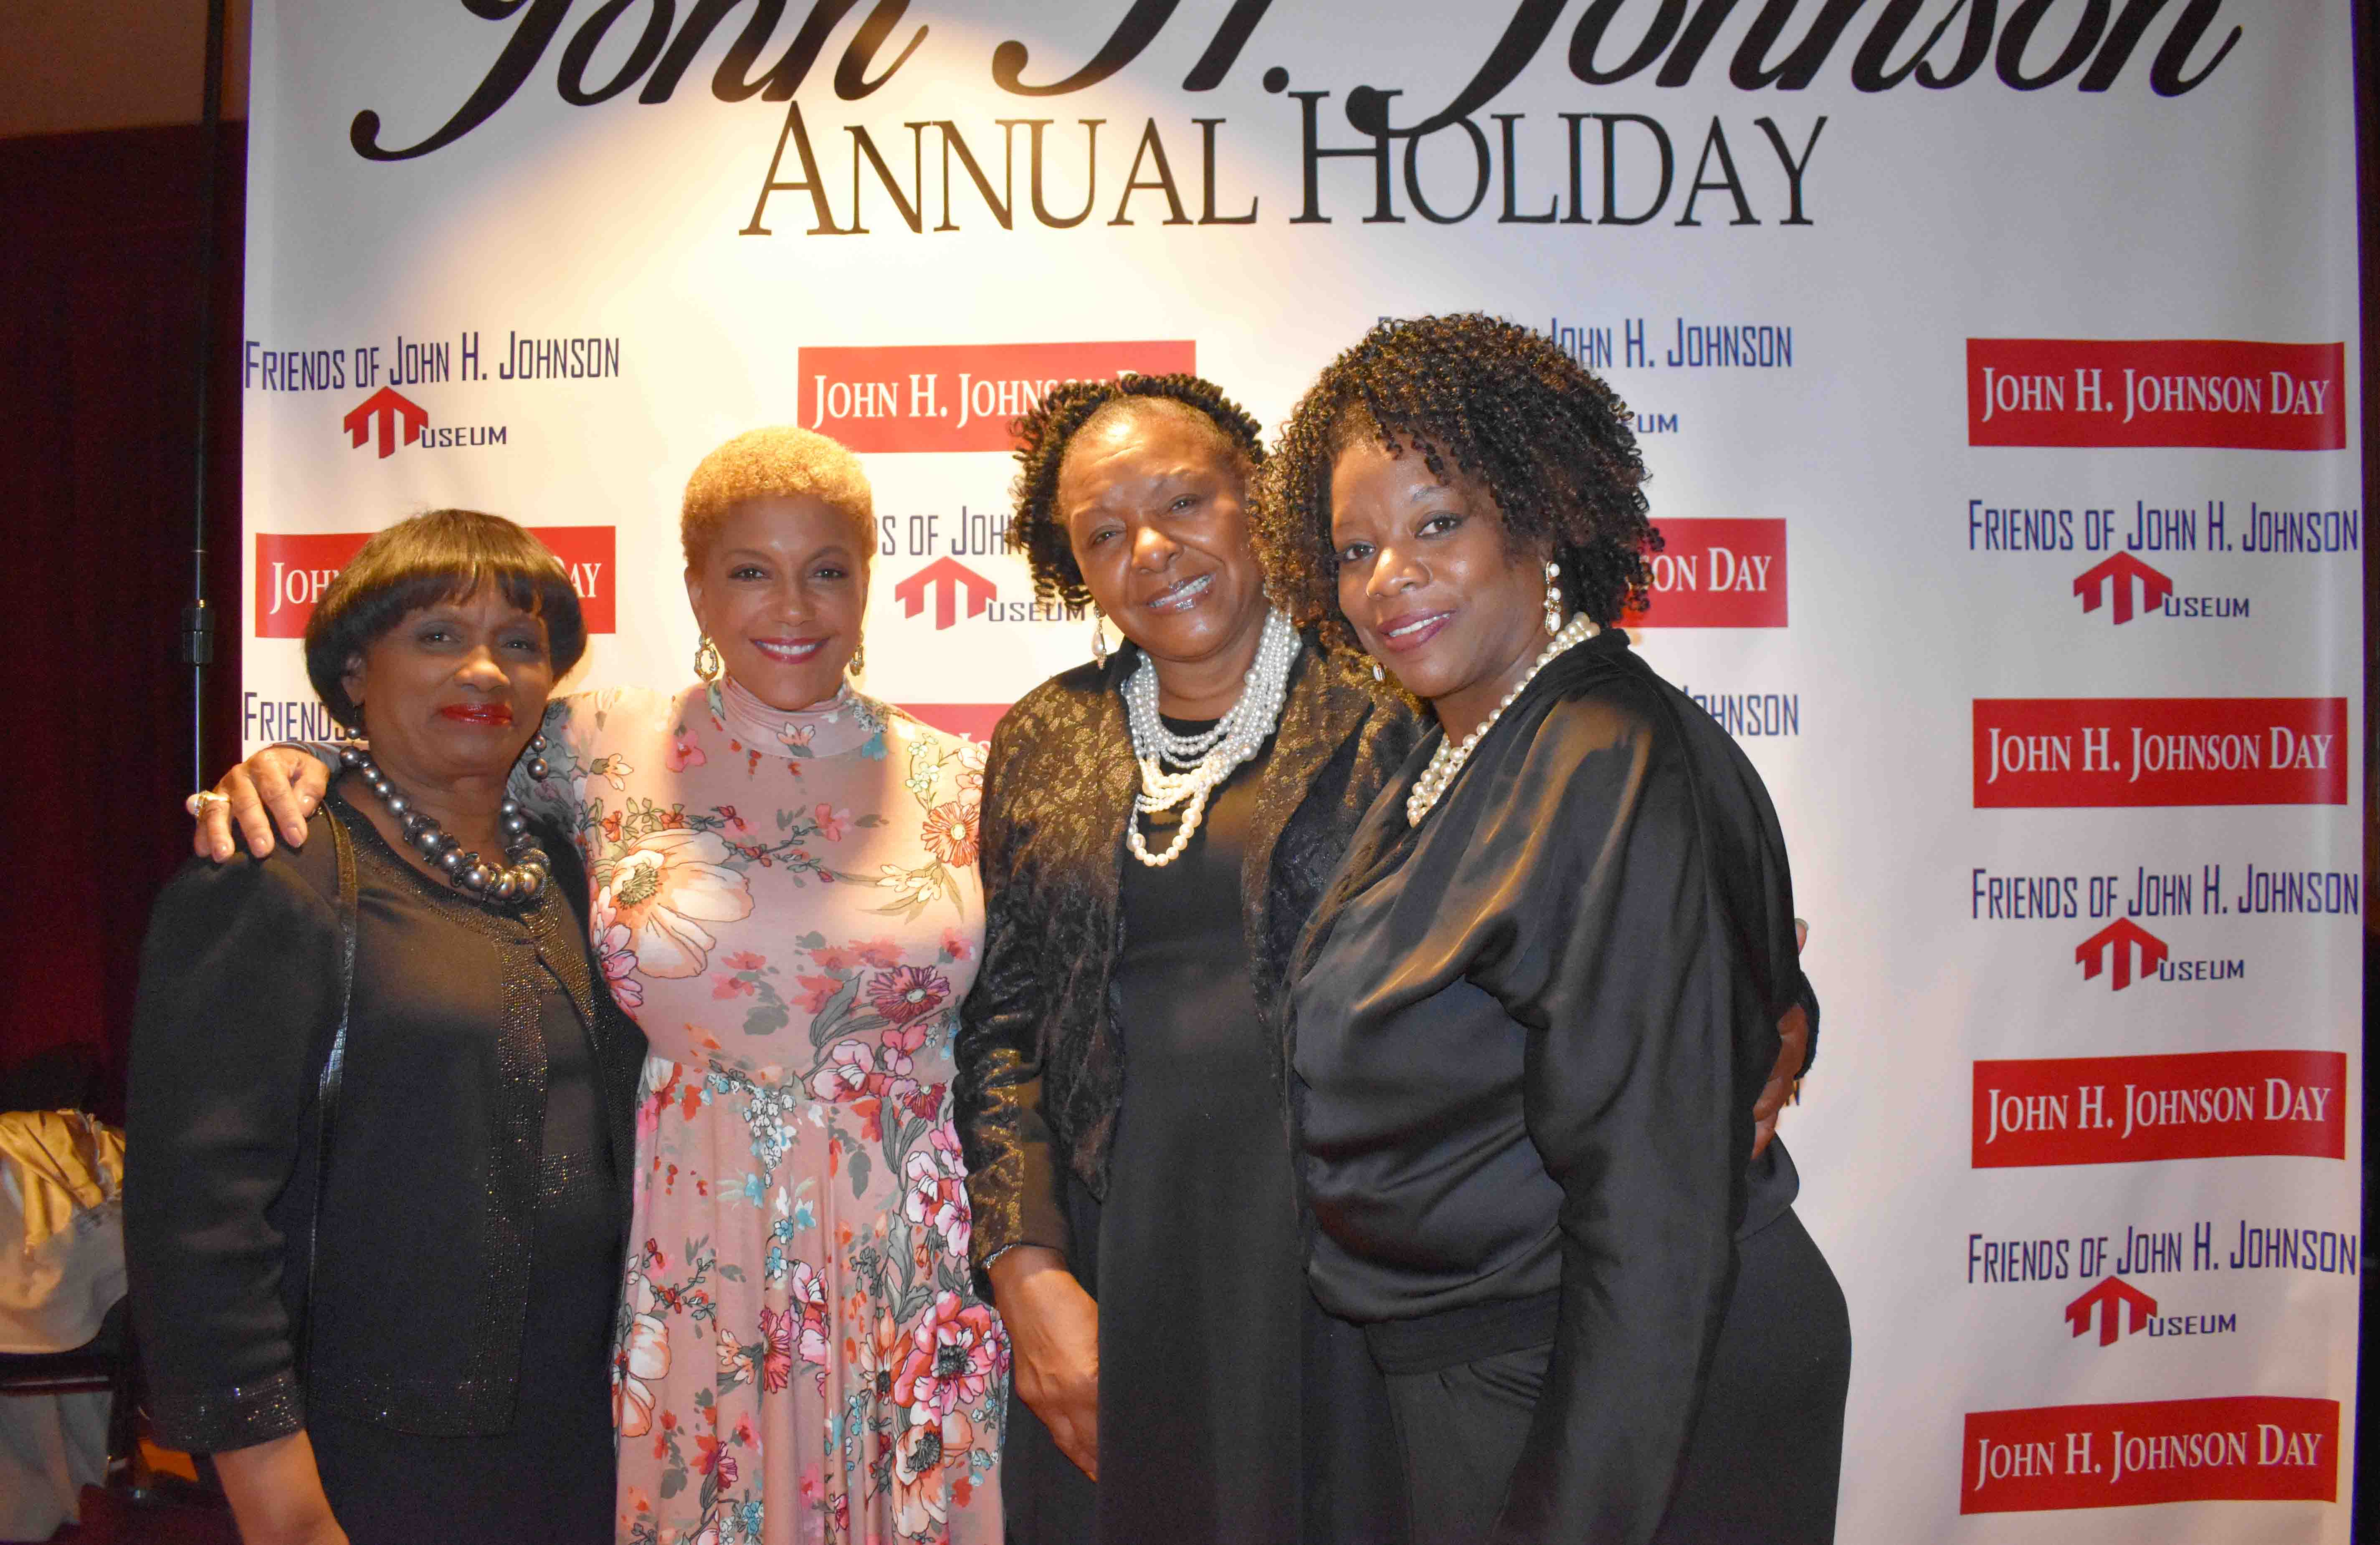 Wanda Ashley, Linda Johnson Rice (daughter of John H. Johnson), Dianna Curry, Jatrina Wilson